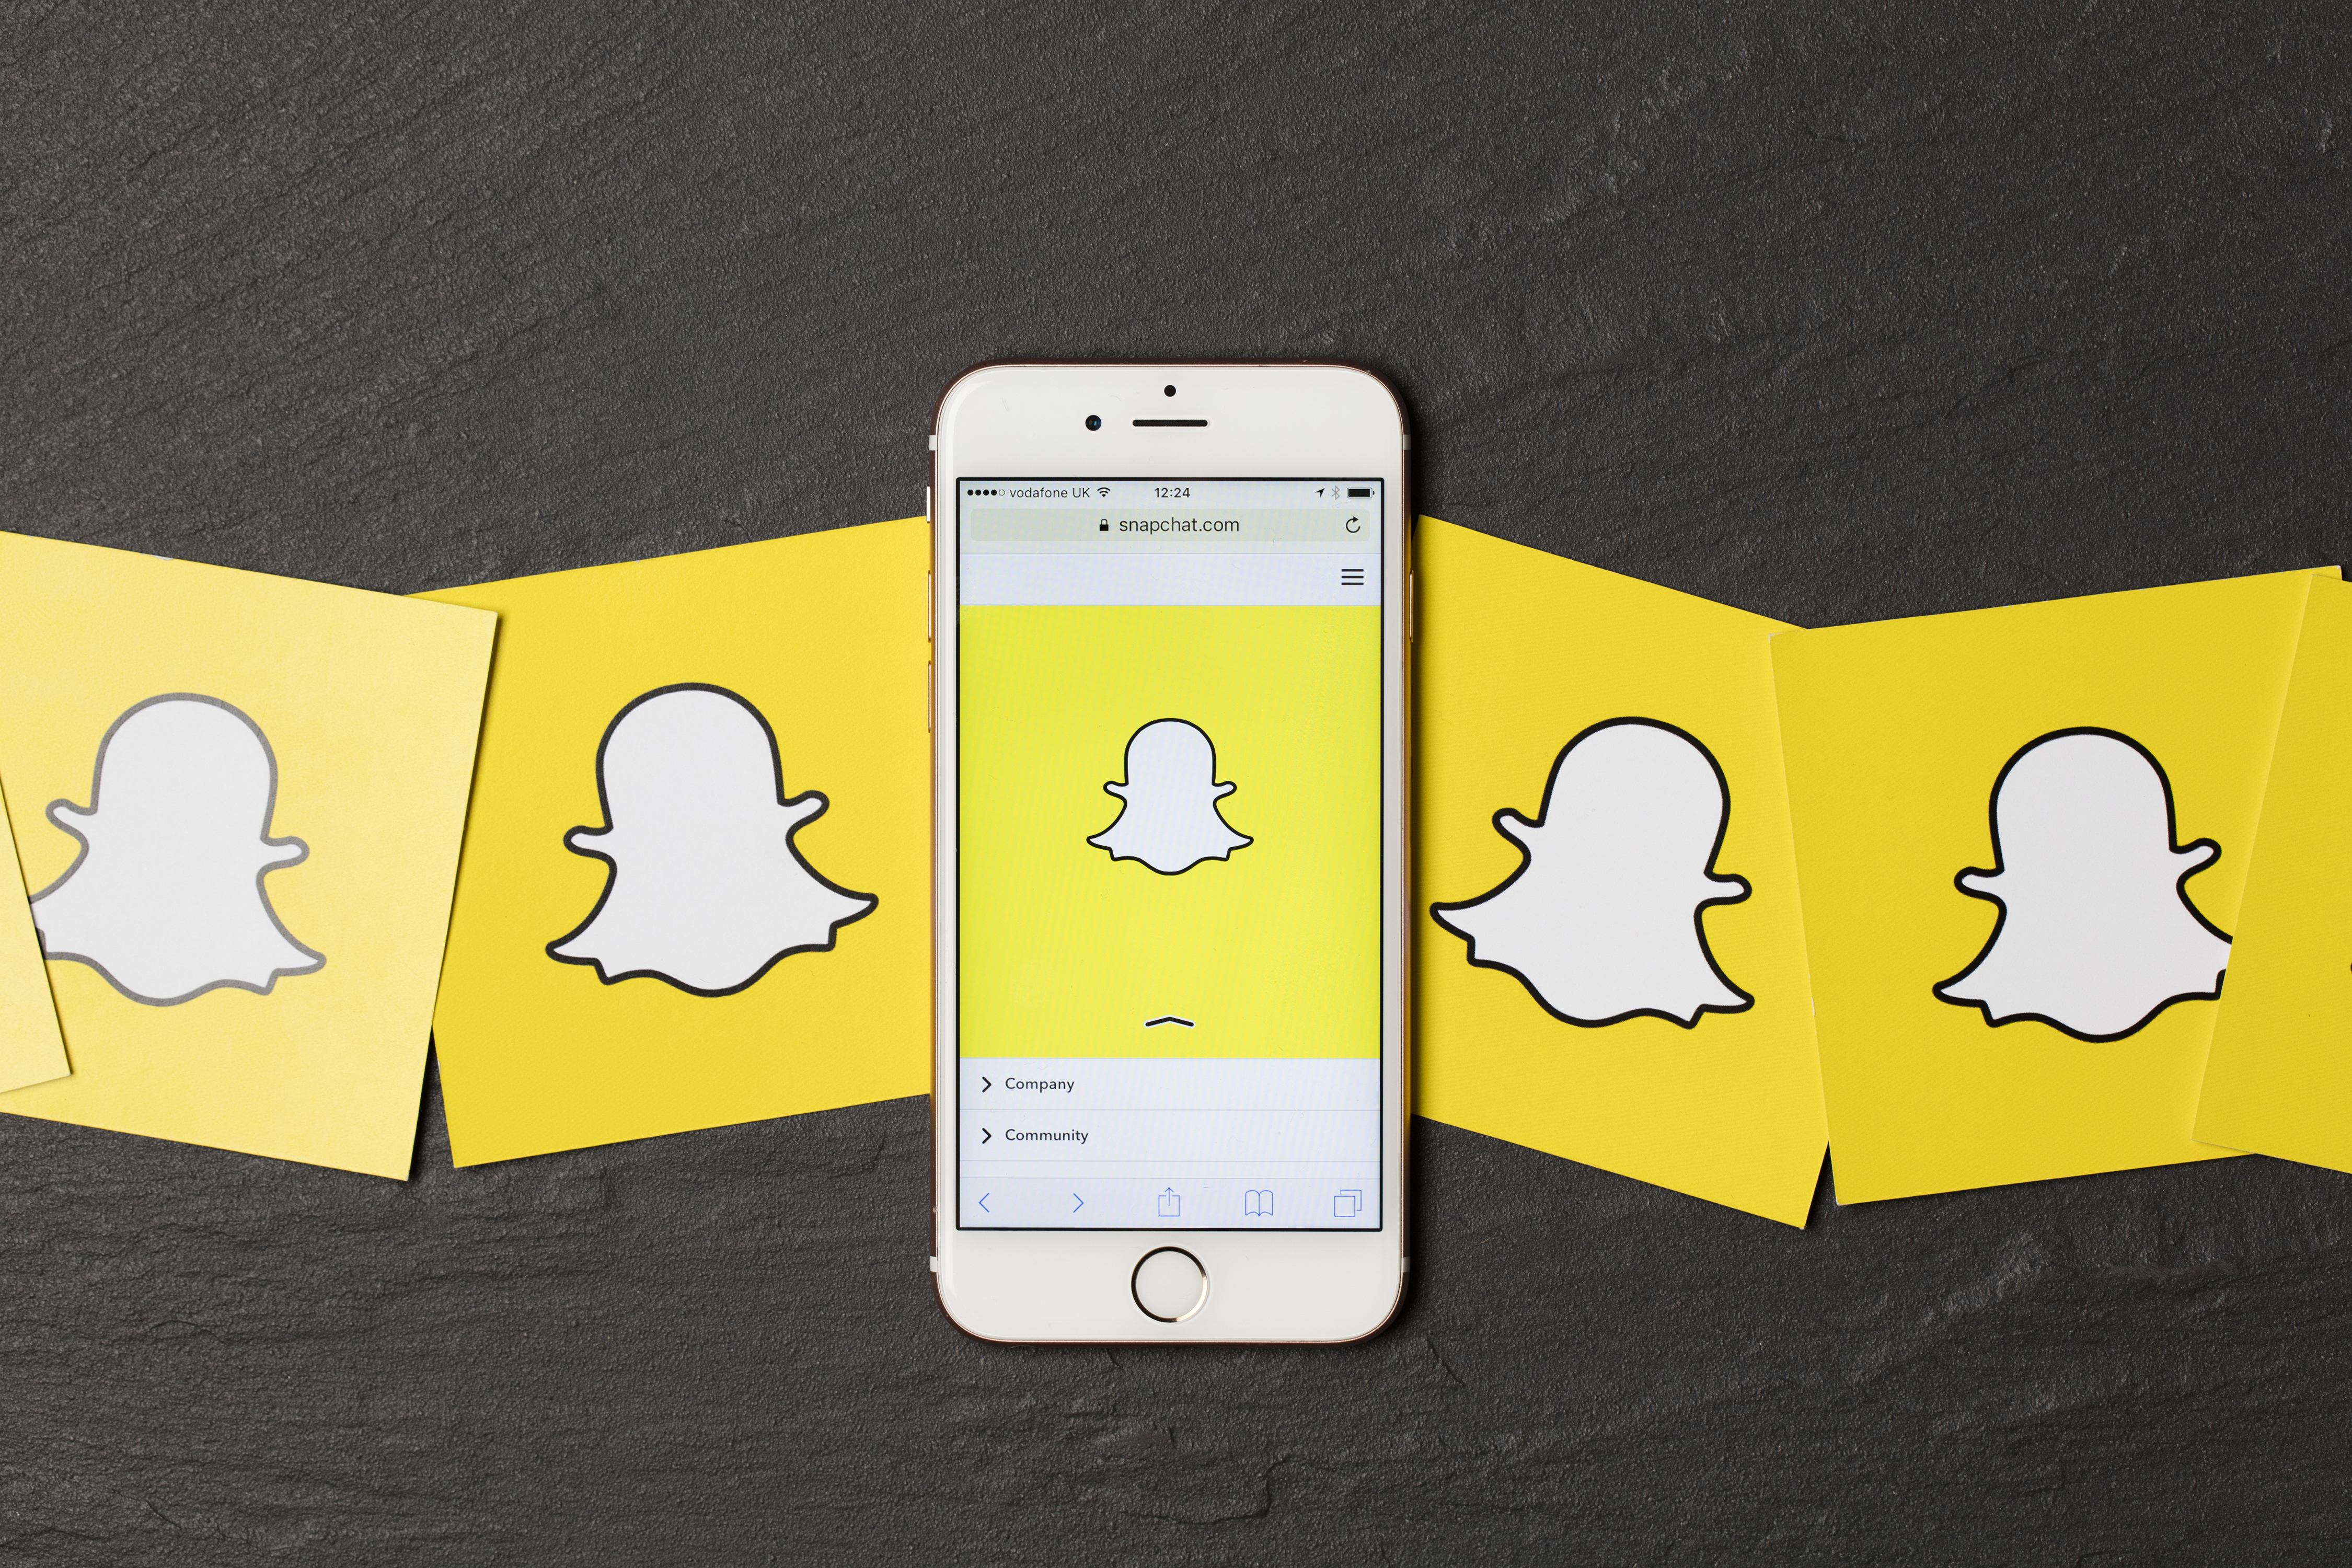 Pictured is the phone app Snapchat. SHUTTERSTOCK/ Ink Drop